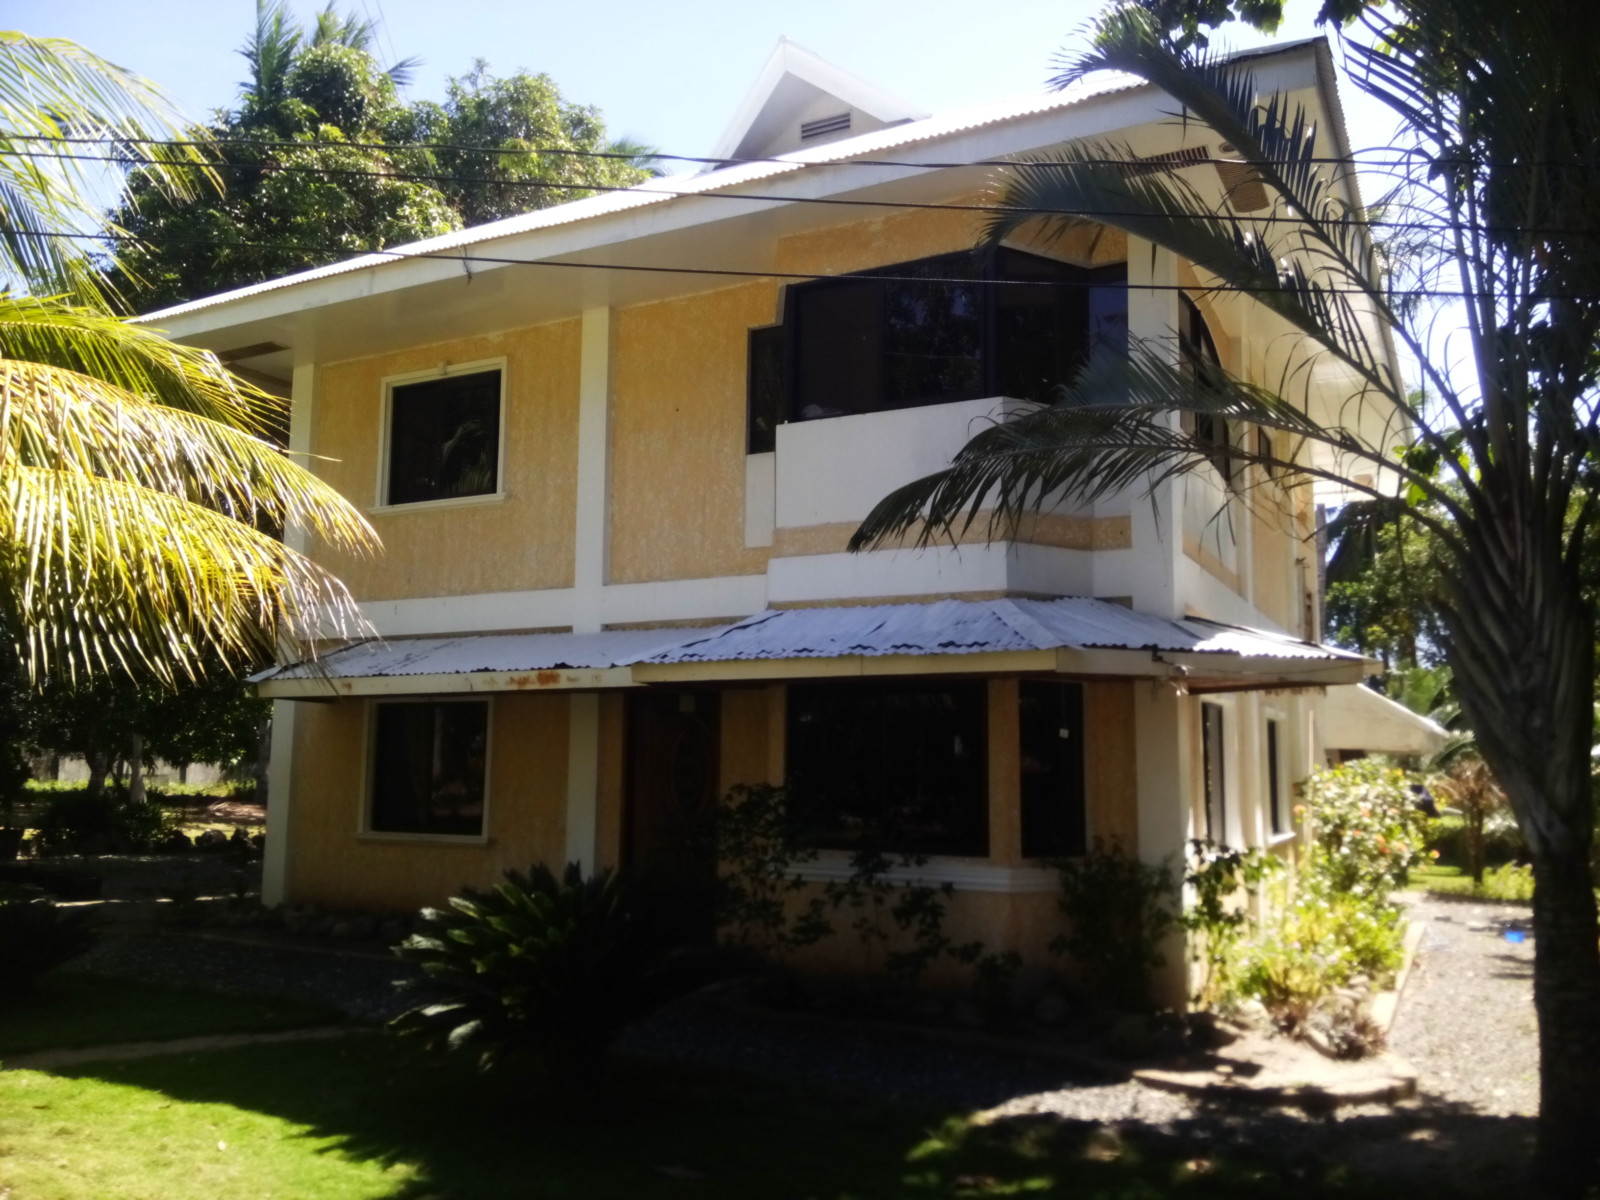 BEACH SIDE HOUSE WITH POOL FOR SALE